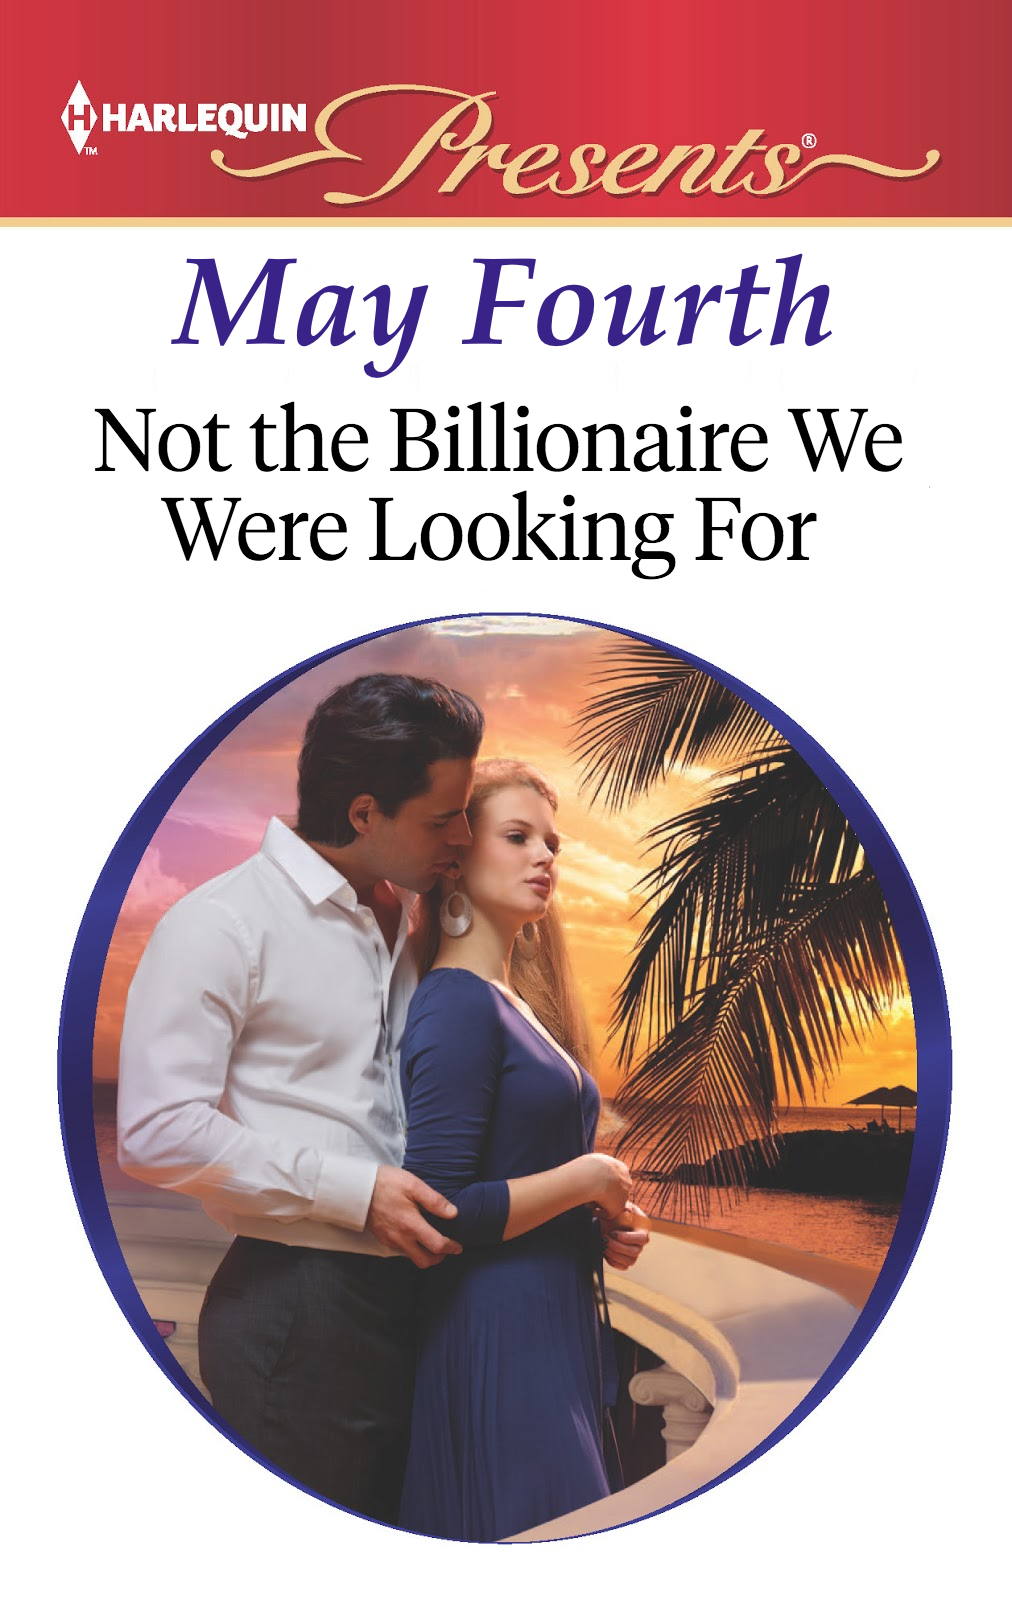 Harlequin Presents May Fourth Not the Billionaire We Were Looking For mock cover